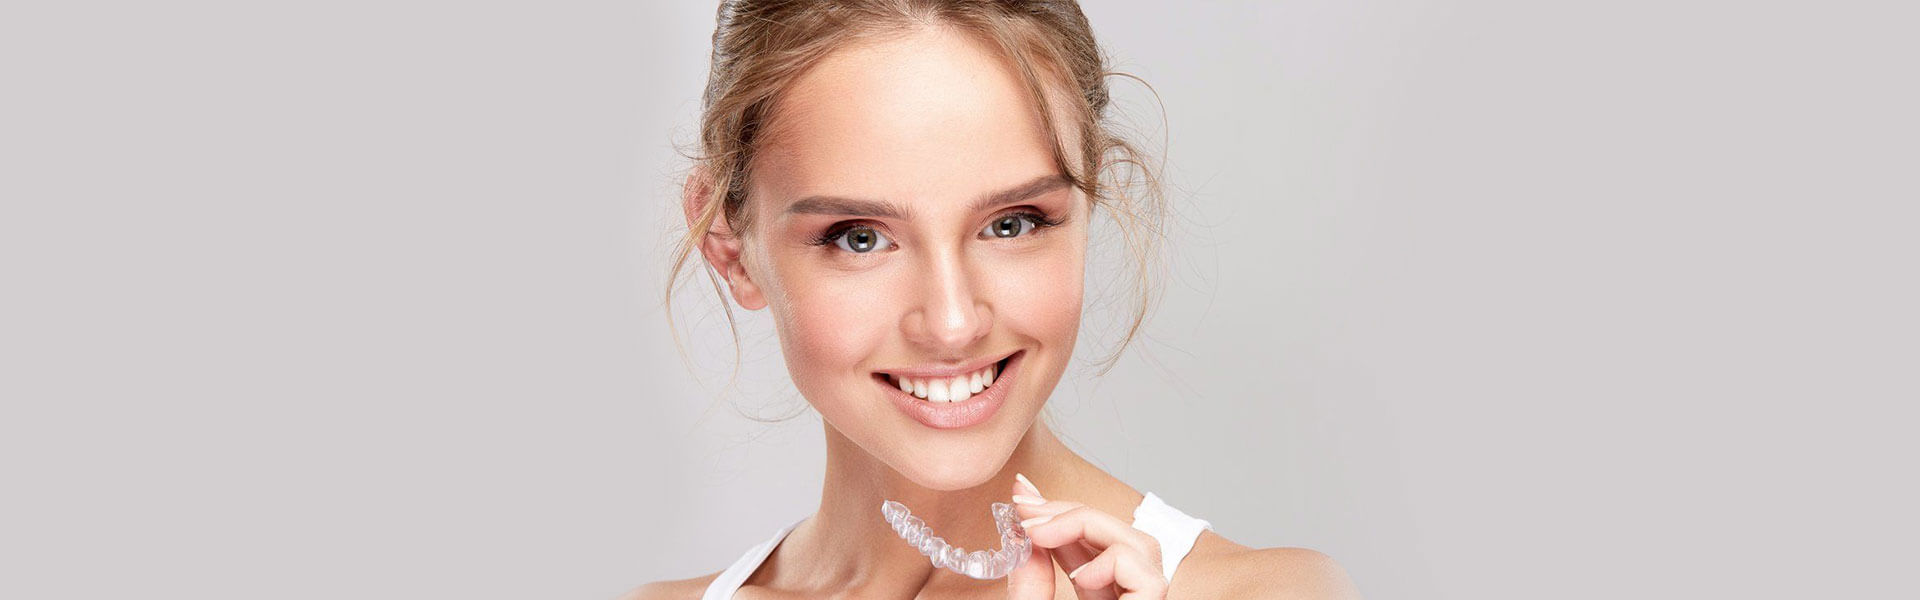 Four Things You Didn't Know About Invisalign